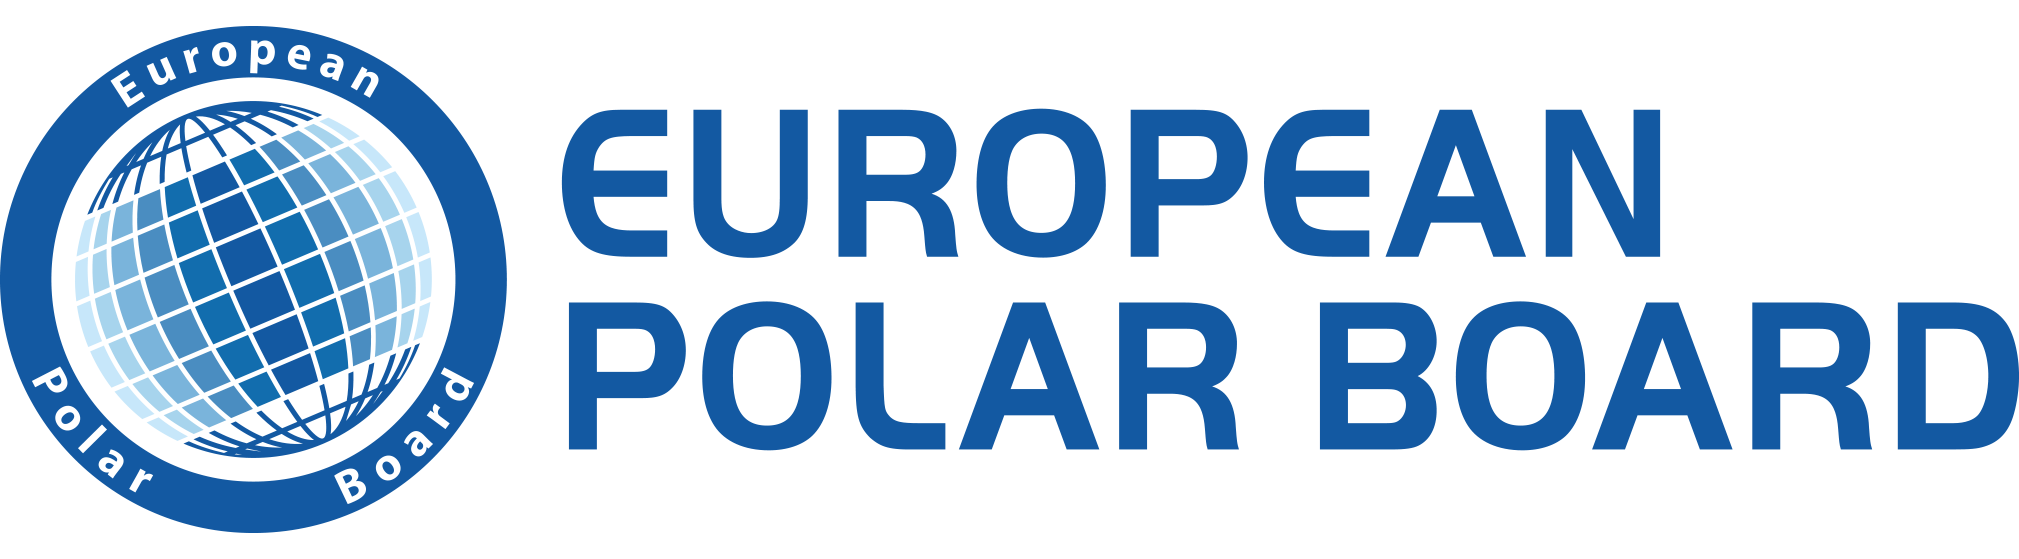 European Polar Board logo